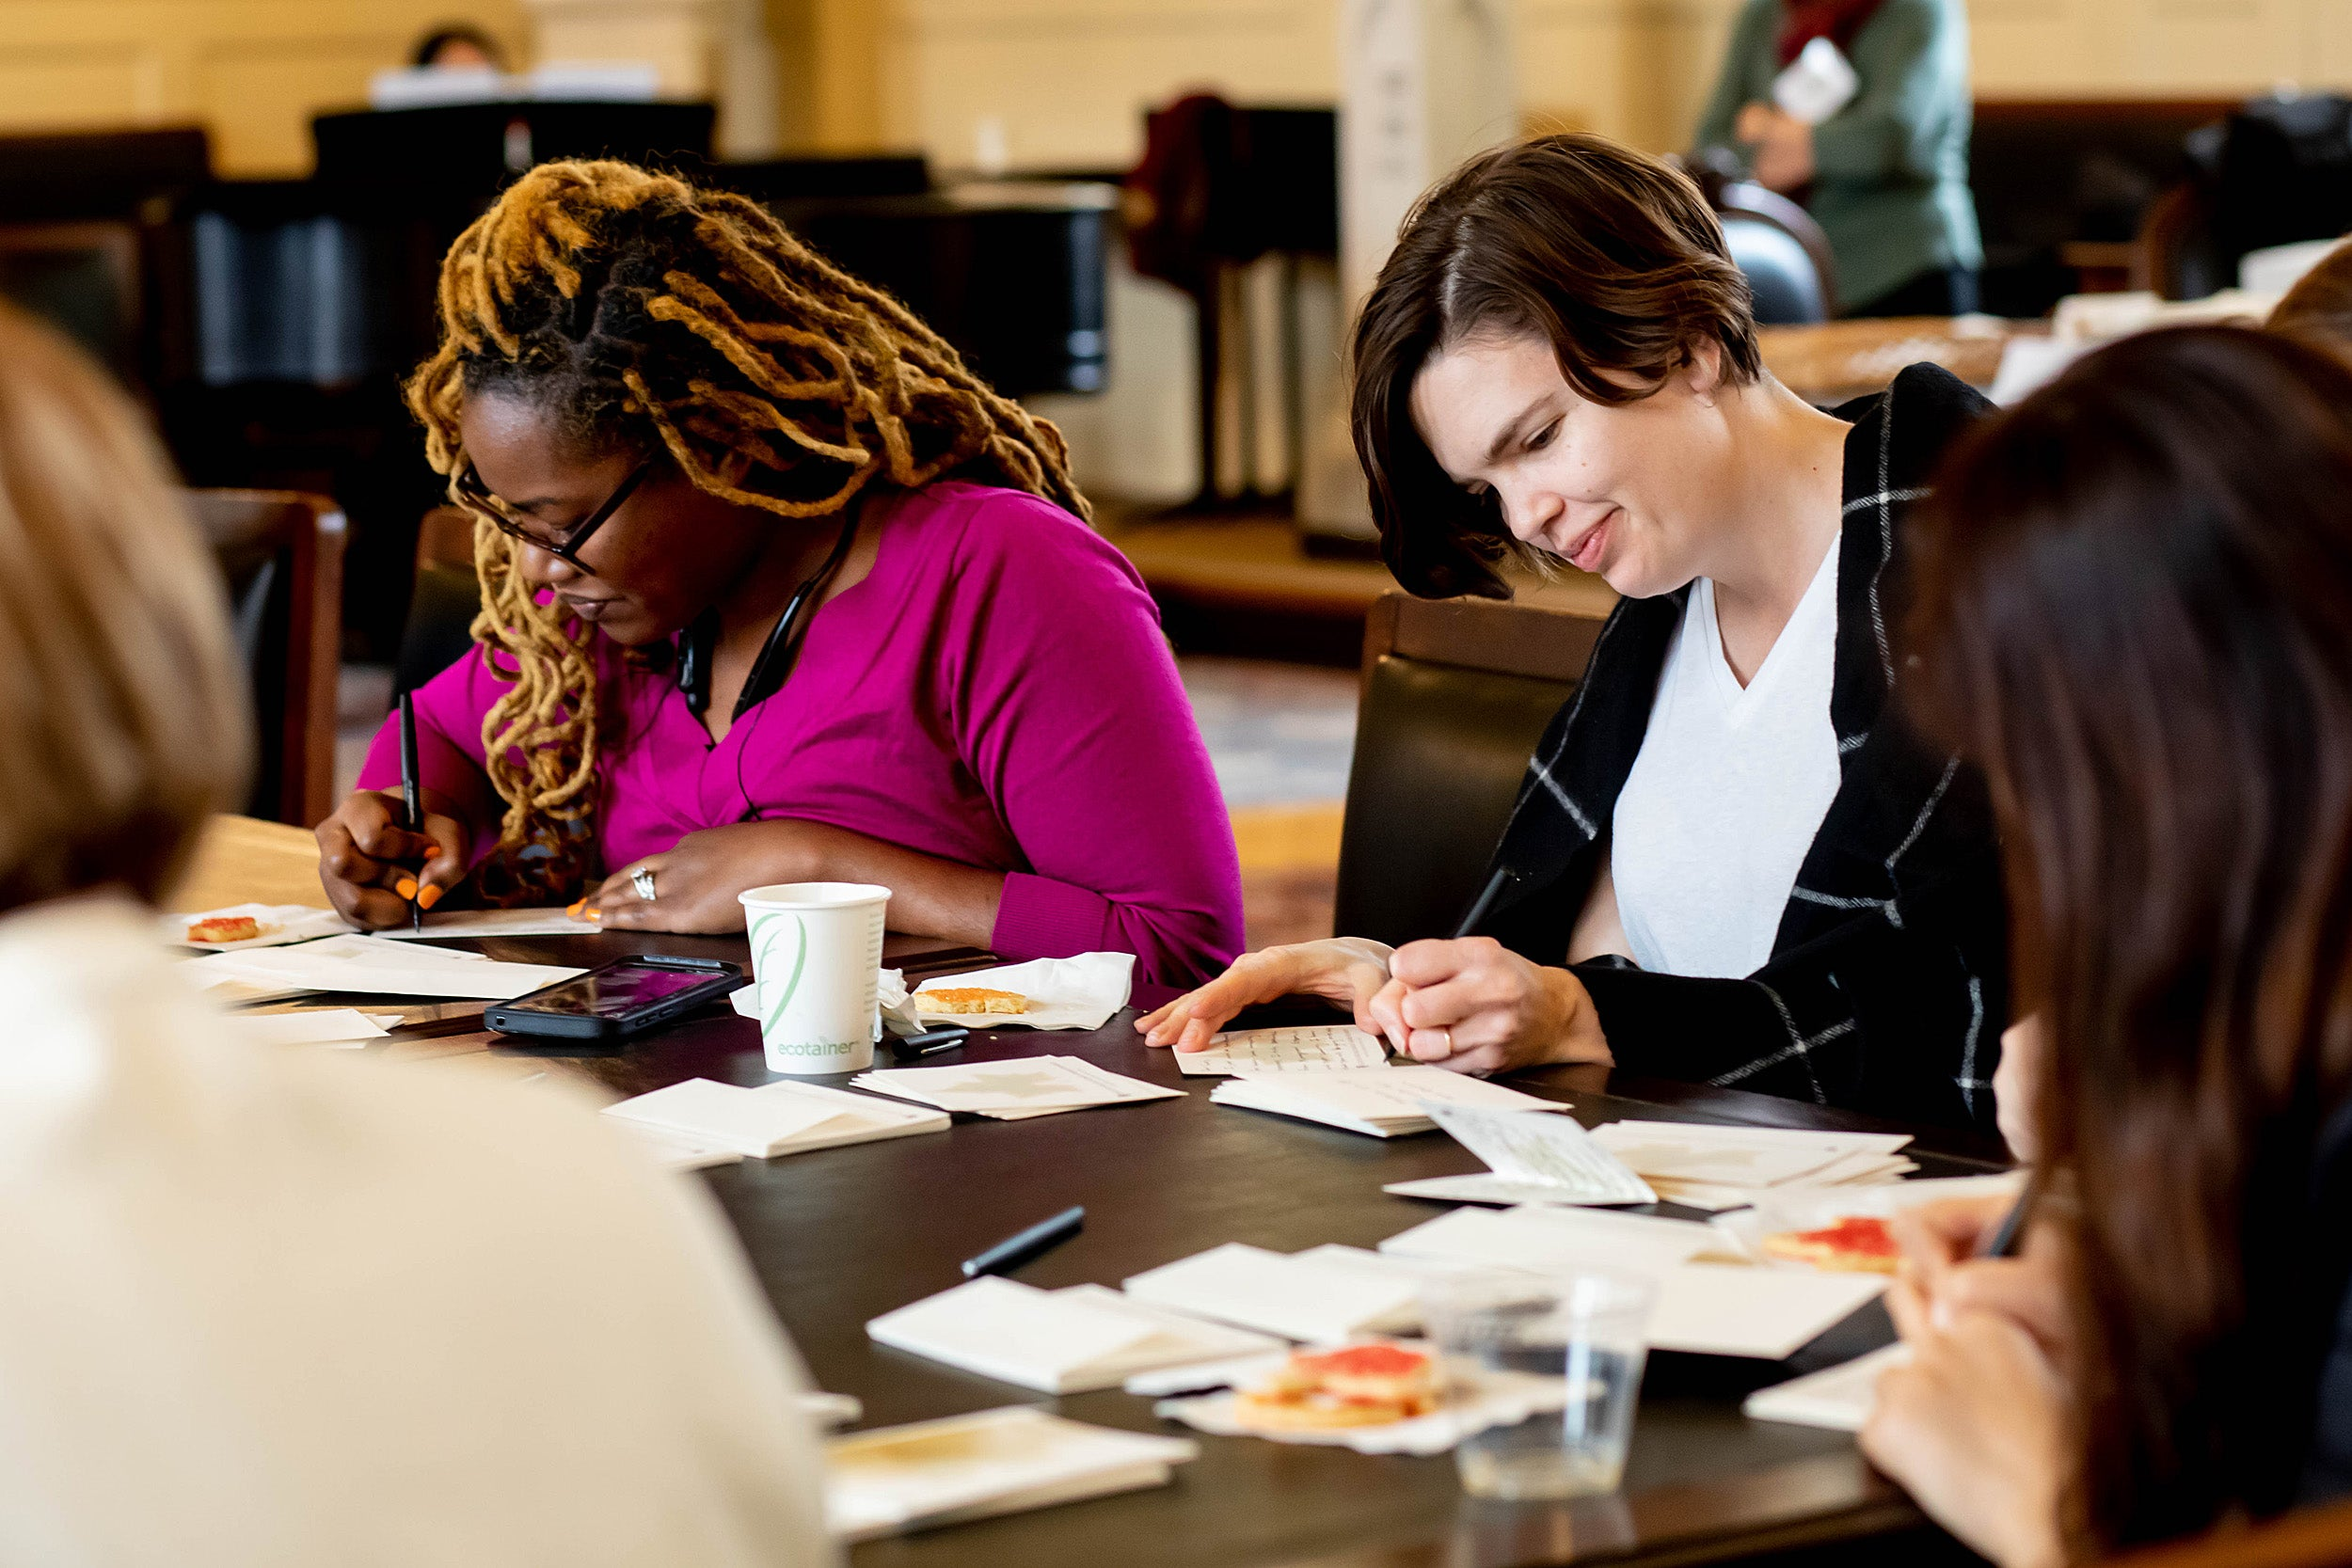 women writing thank-you notes at table.